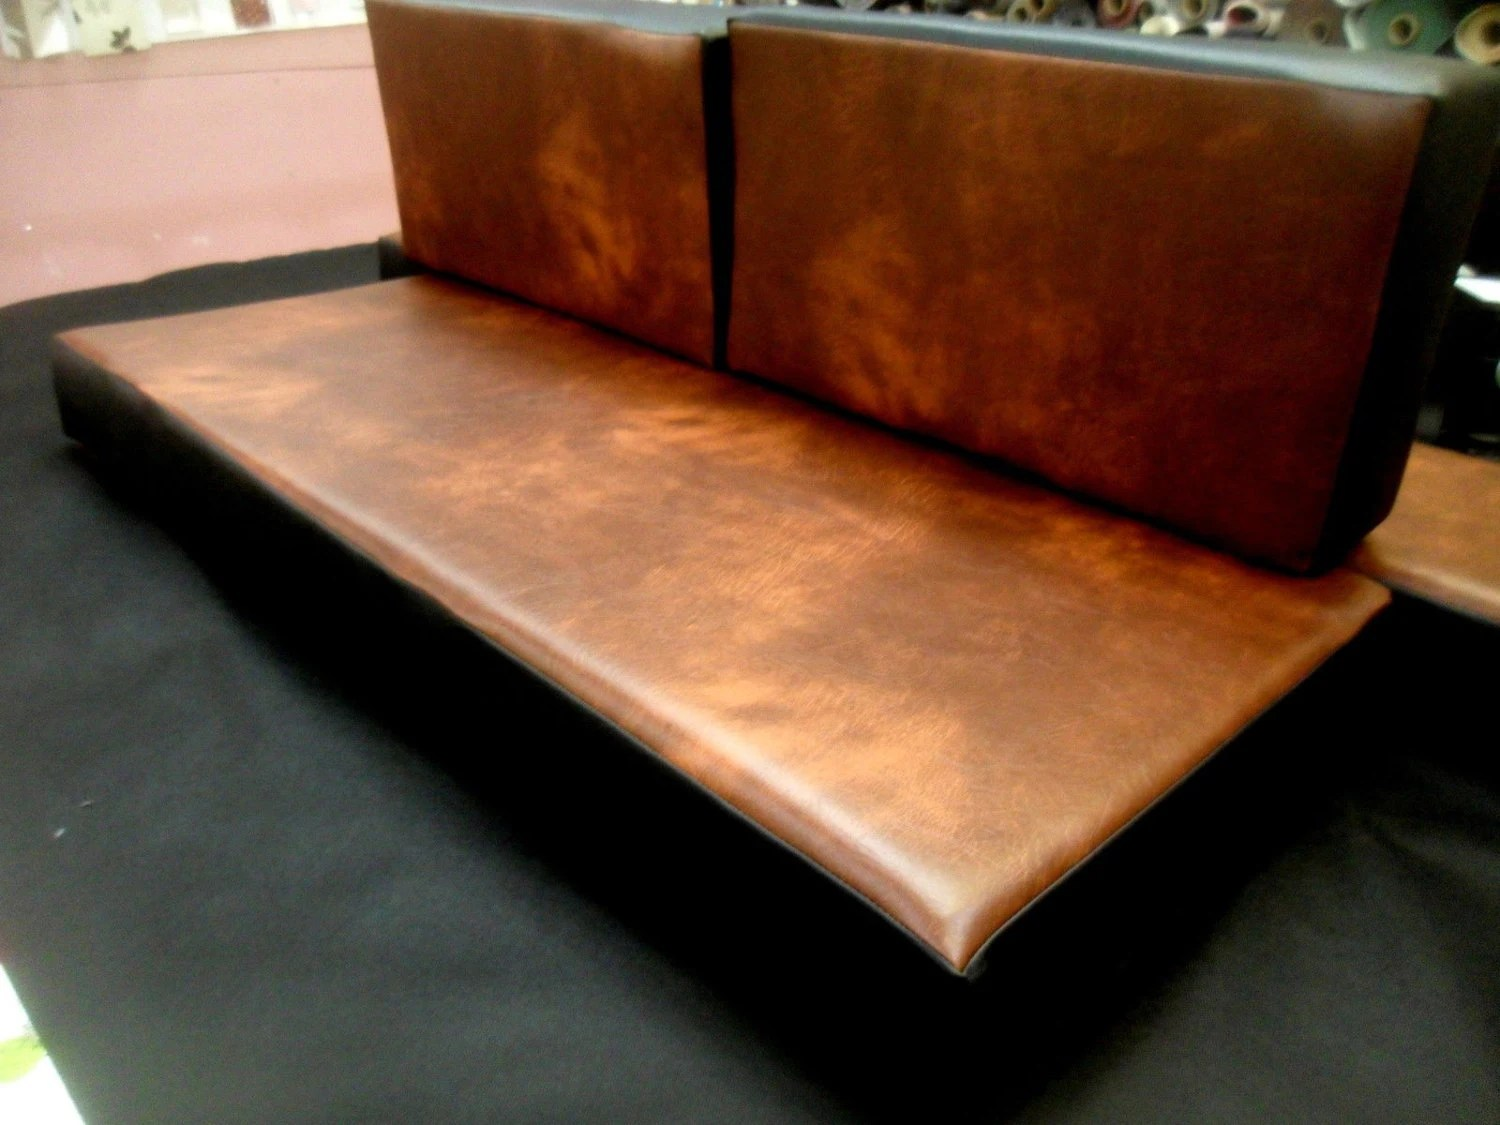 faux leather sofa replacement covers two sofas into sectional bench seat cushion and back 55 x 25 5